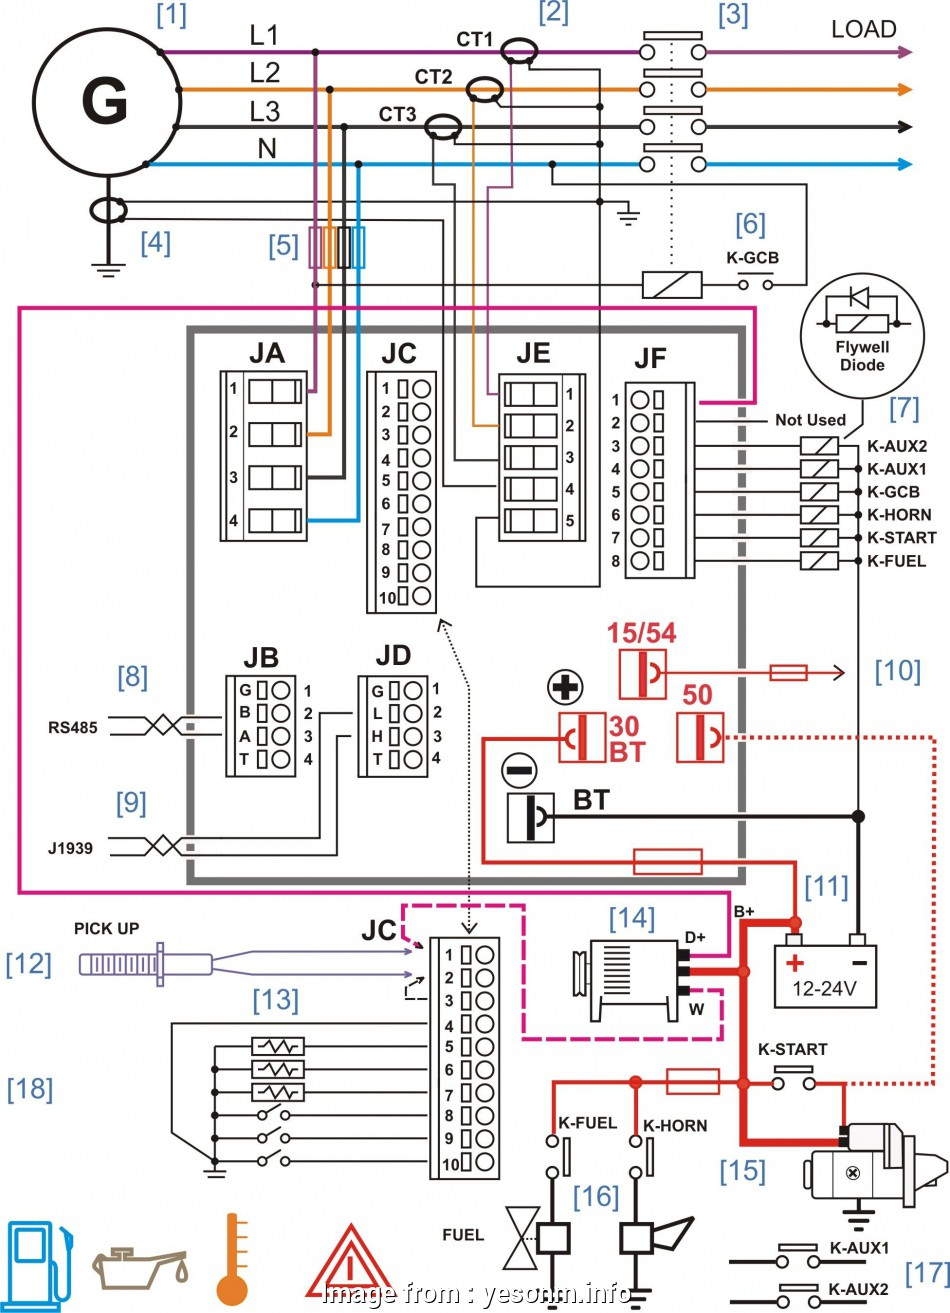 DIAGRAM] Structural Concepts Wiring Diagrams FULL Version HD Quality Wiring  Diagrams - DIAGRAMSTUDIOS.NEGOCE-OUTILS.FROutils-Negoce.fr